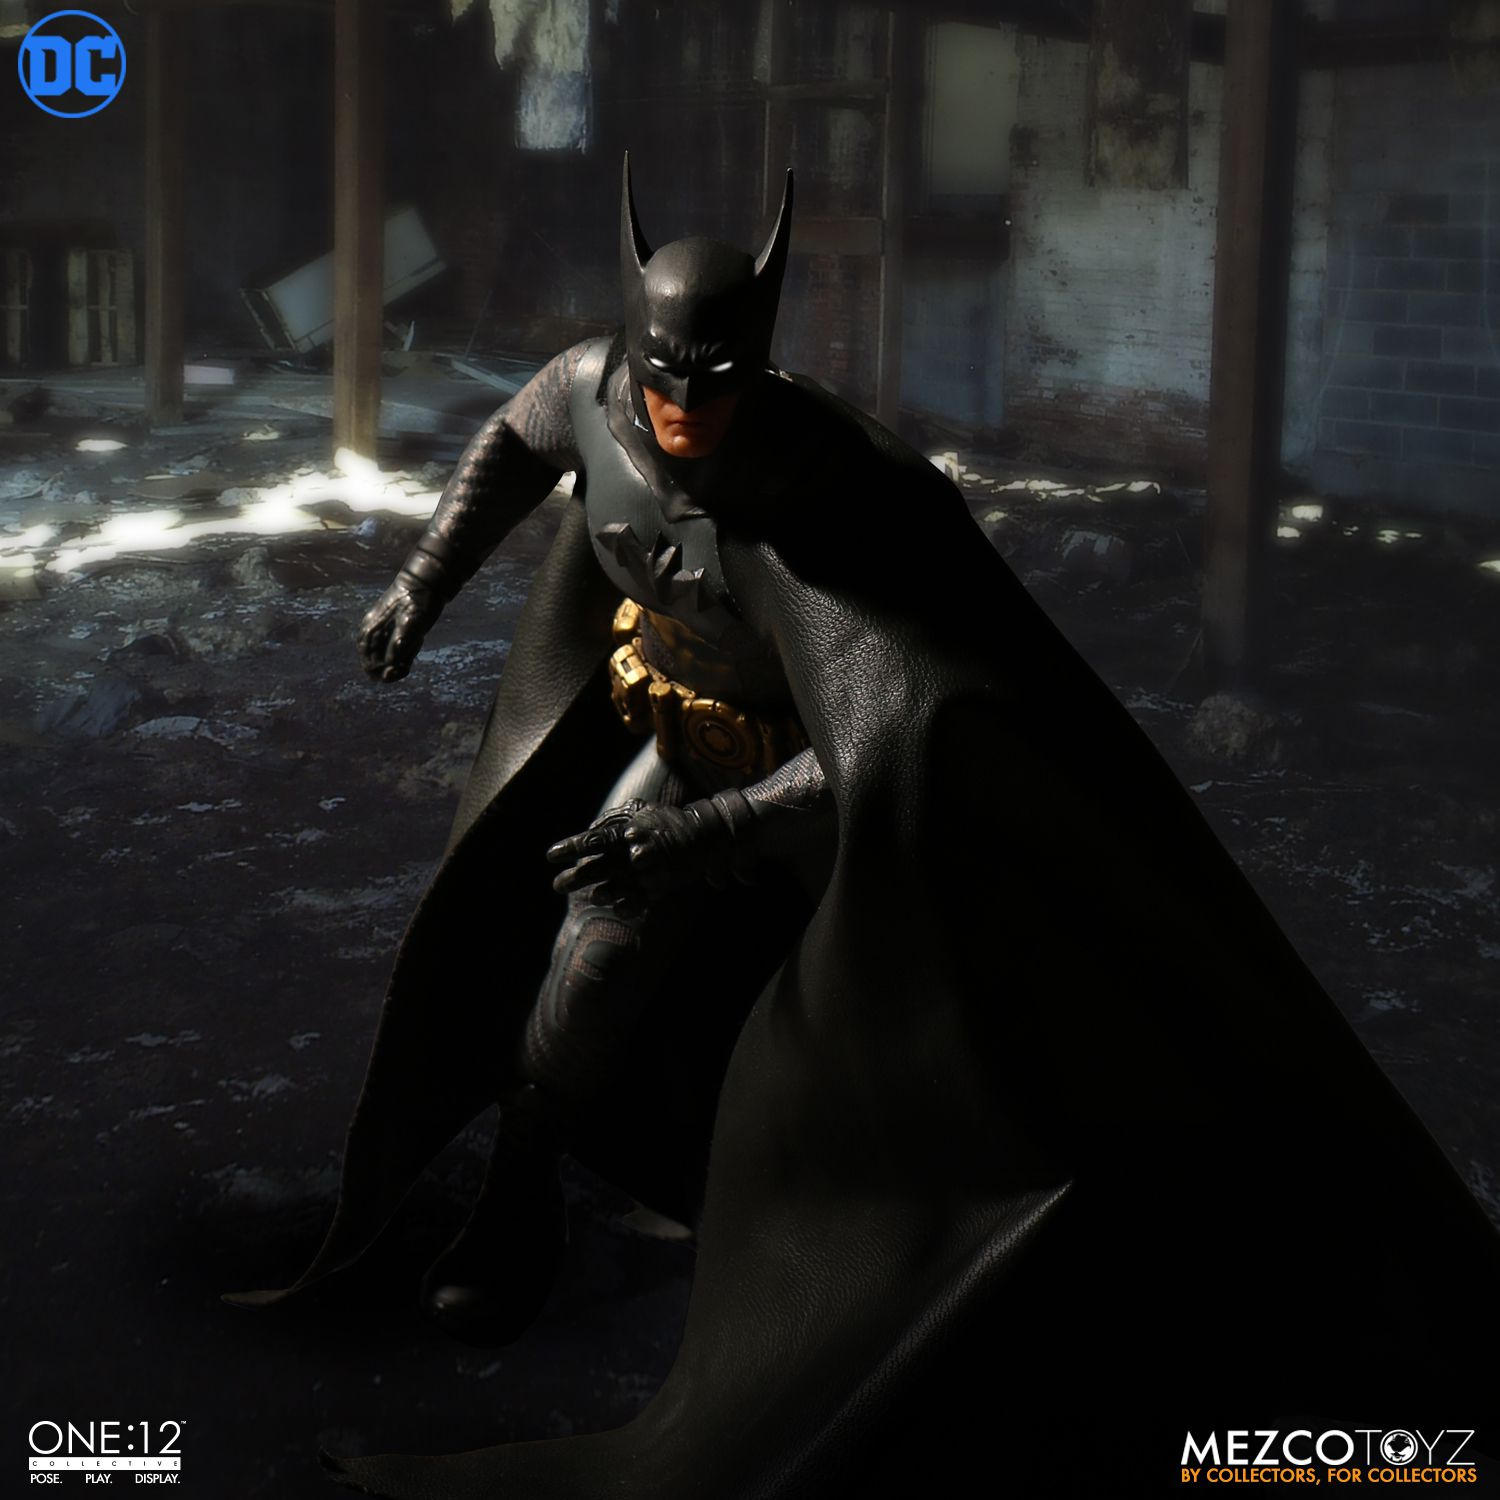 Mezco-Batman-Ascending-Knight-007.jpg